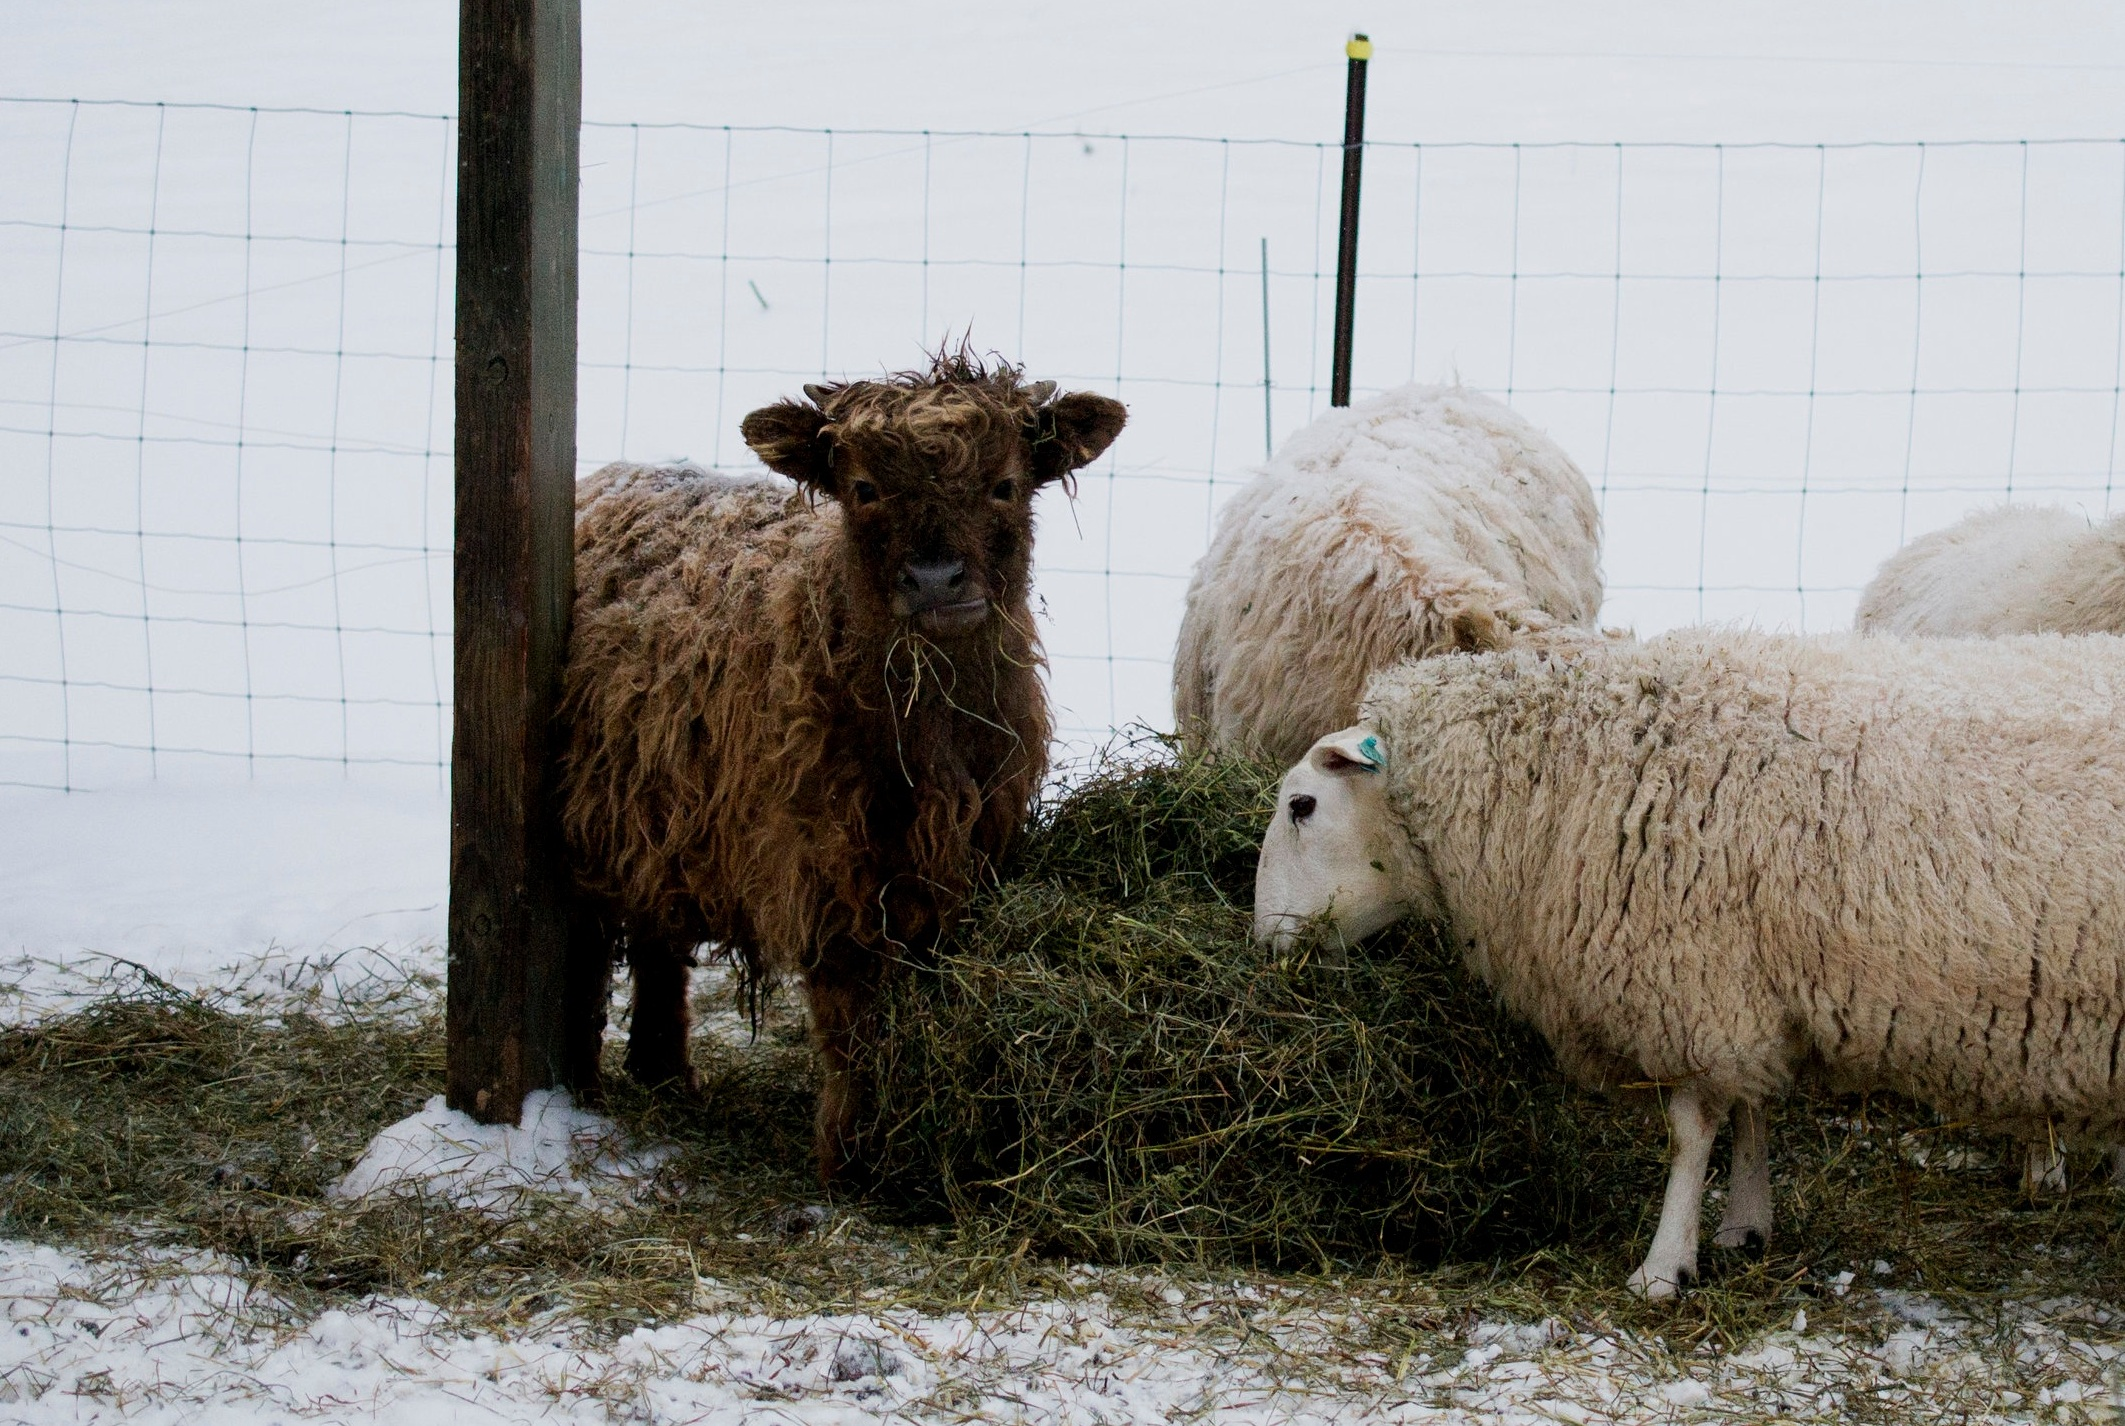 Our livestock - We raise cattle and sheep